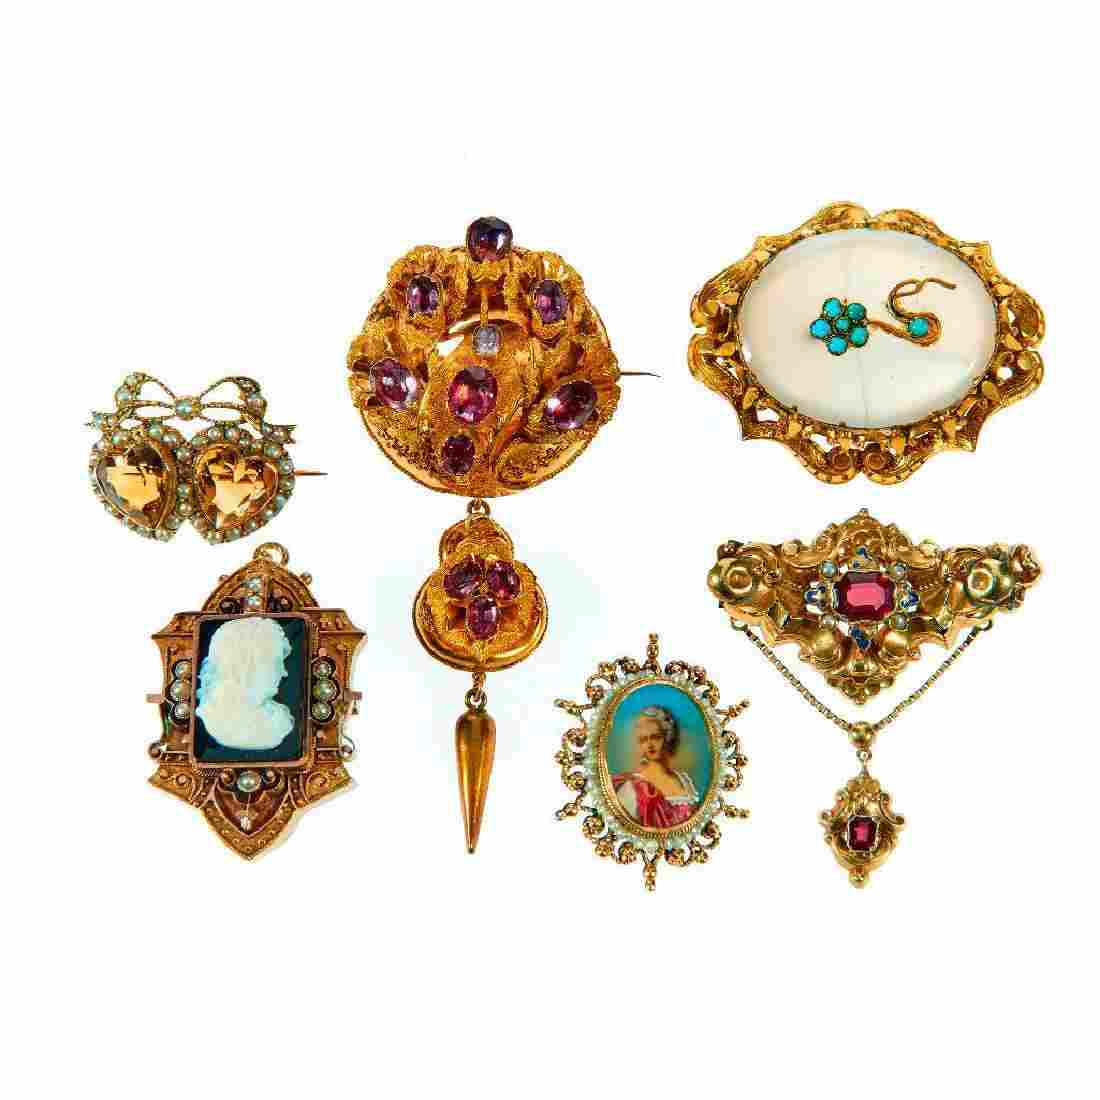 Collection of 6 Victorian gem-set brooches